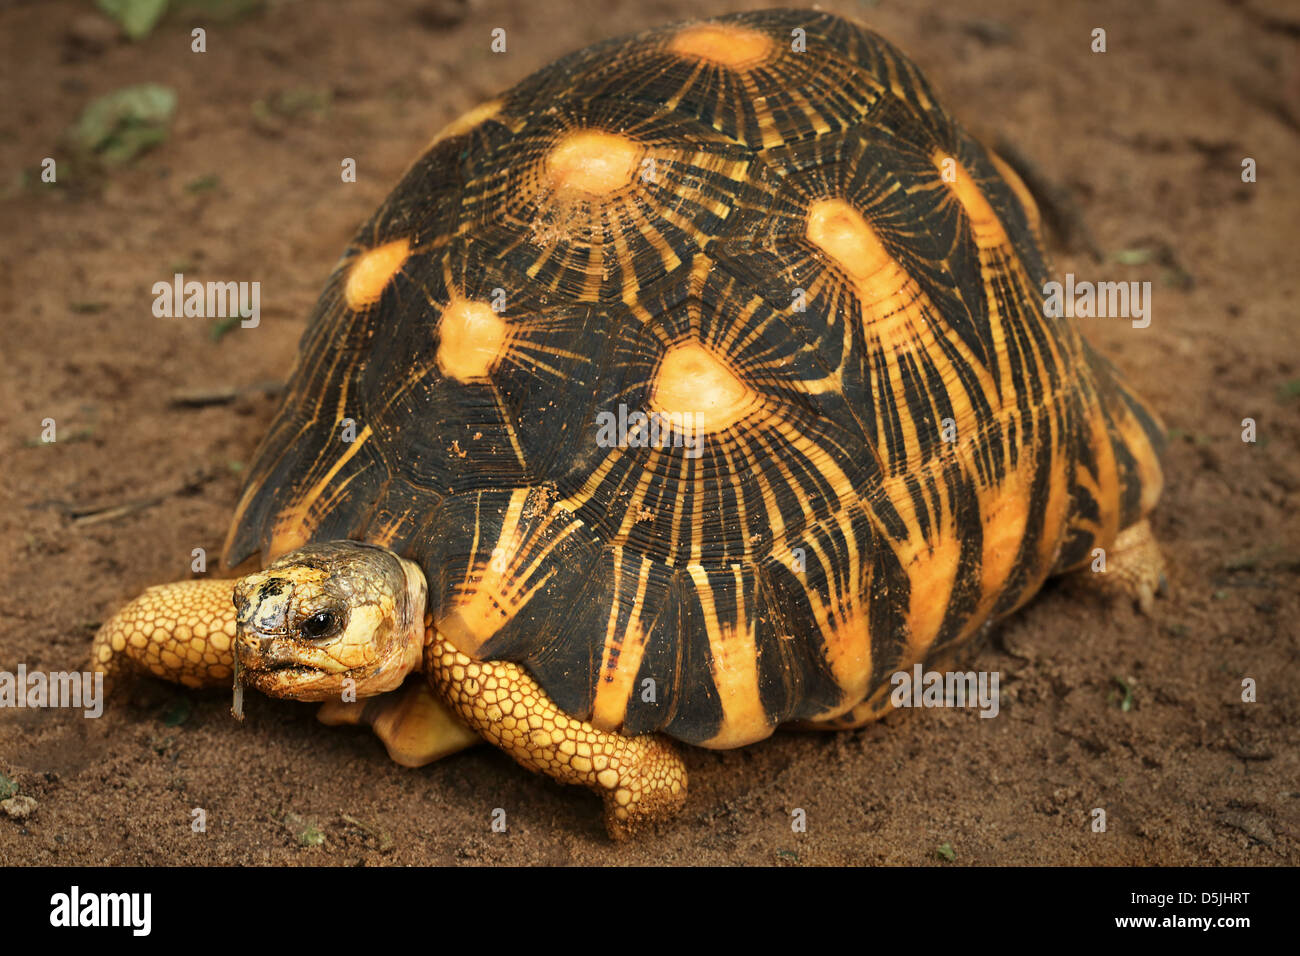 Critically Endangered Radiated Tortoise (Astrochelys radiata) looks around in Madagascar. One of world's most - Stock Image